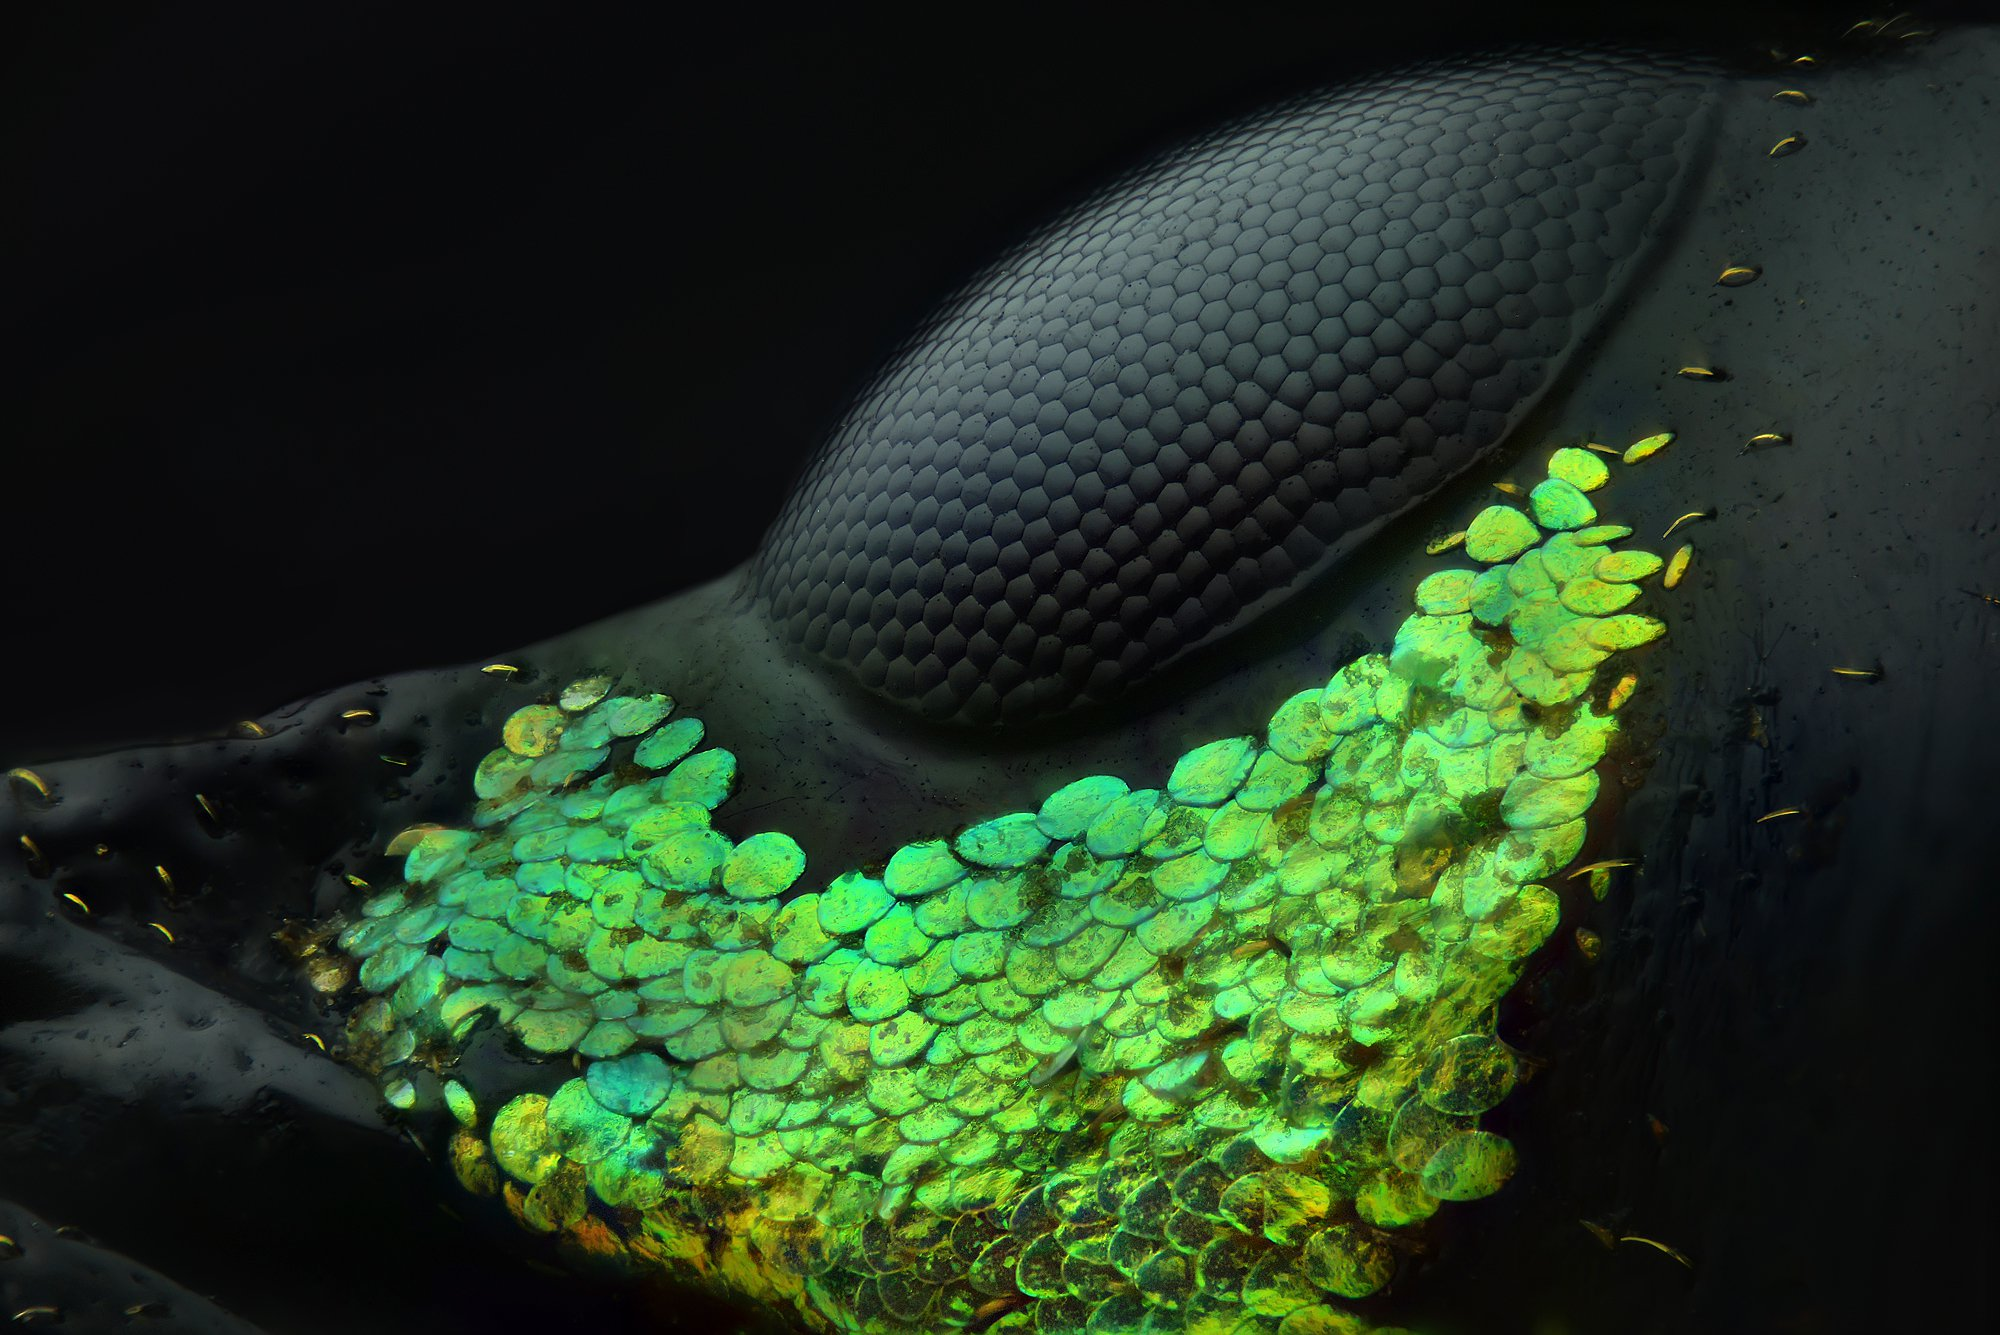 IN PHOTO: FIRST PLACE - Eye of a Metapocyrtus subquadrulifer beetle Nikon has announced the winning photos from the 2018 Nikon Small World Photomicrography Competition, the 44th annual contest celebrating ???excellence in photography through the light microscope.??? The first place photo was captured by Emirati photographer Yousef Al Habshi and shows part of the compound eye of an Asian Red Palm weevil and the greenish scales that surround it. The beetle is usually less than 0.43in (11mm) in length. Al Habshi created the photo using reflected light and by stacking 128 micrographs into a single photo. ???The main challenge was to show the black body against the black background without overexposing the skin and scales,??? the photographer says. ???Because of the variety of coloring and the lines that display in the eyes of insects, I feel like I???m photographing a collection of jewelry. Not all people appreciate small species, particularly insects. Through photomicrography we can find a whole new, beautiful world which hasn???t been seen before. It???s like discovering what lies under the ocean???s surface.??? Second place was awarded to Rogelio Moreno for his colorful photo of a Fern sorus, a clustered structure that produces and contains spores. The image was produced using image stacking and autoflorecence, which requires hitting the sorus with ultraviolet light. Each color represents a different maturity stage of each sporangium inside the sorus. Saulius Gugis captured third place for his adorable spittlebug photo, captured using focus-stacking. The spittlebug can be seen in the process of making his ???bubble house.??? Spittlebugs produce the foam substance to hide from predators, insulate themselves from temperature fluctuations and to stay moist. In addition to the top three winners, Nikon Small World recognized an additional 92 photos out over almost 2,500 entries from scientists and artists in 89 countries. Featuring: Eye of a Metapocyrtus subq